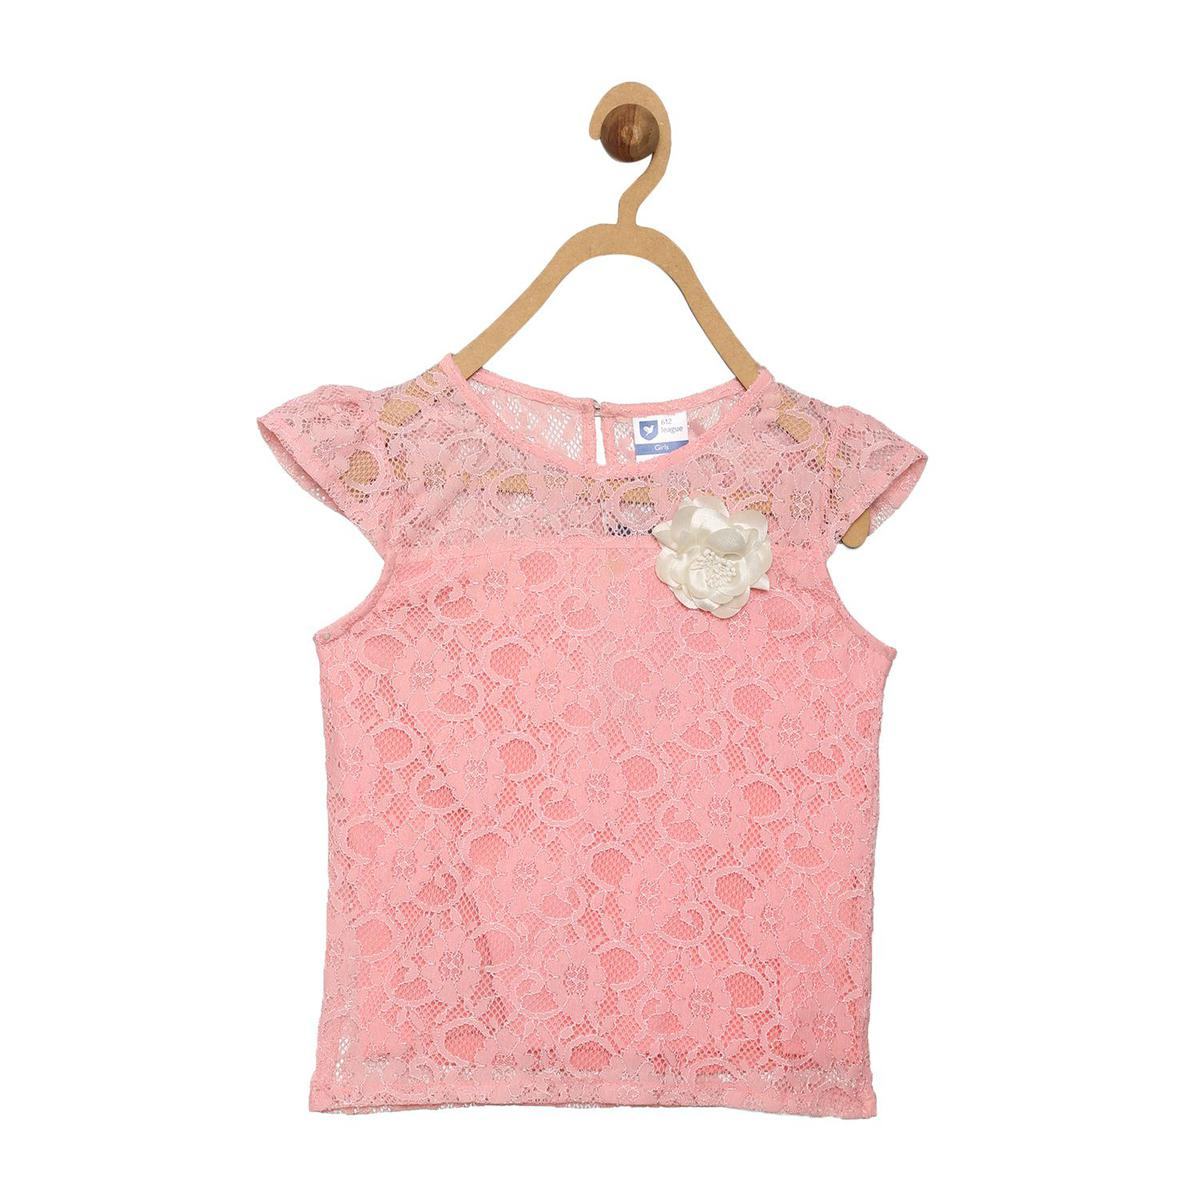 612 League - Girl's Peach Colored Knits Top